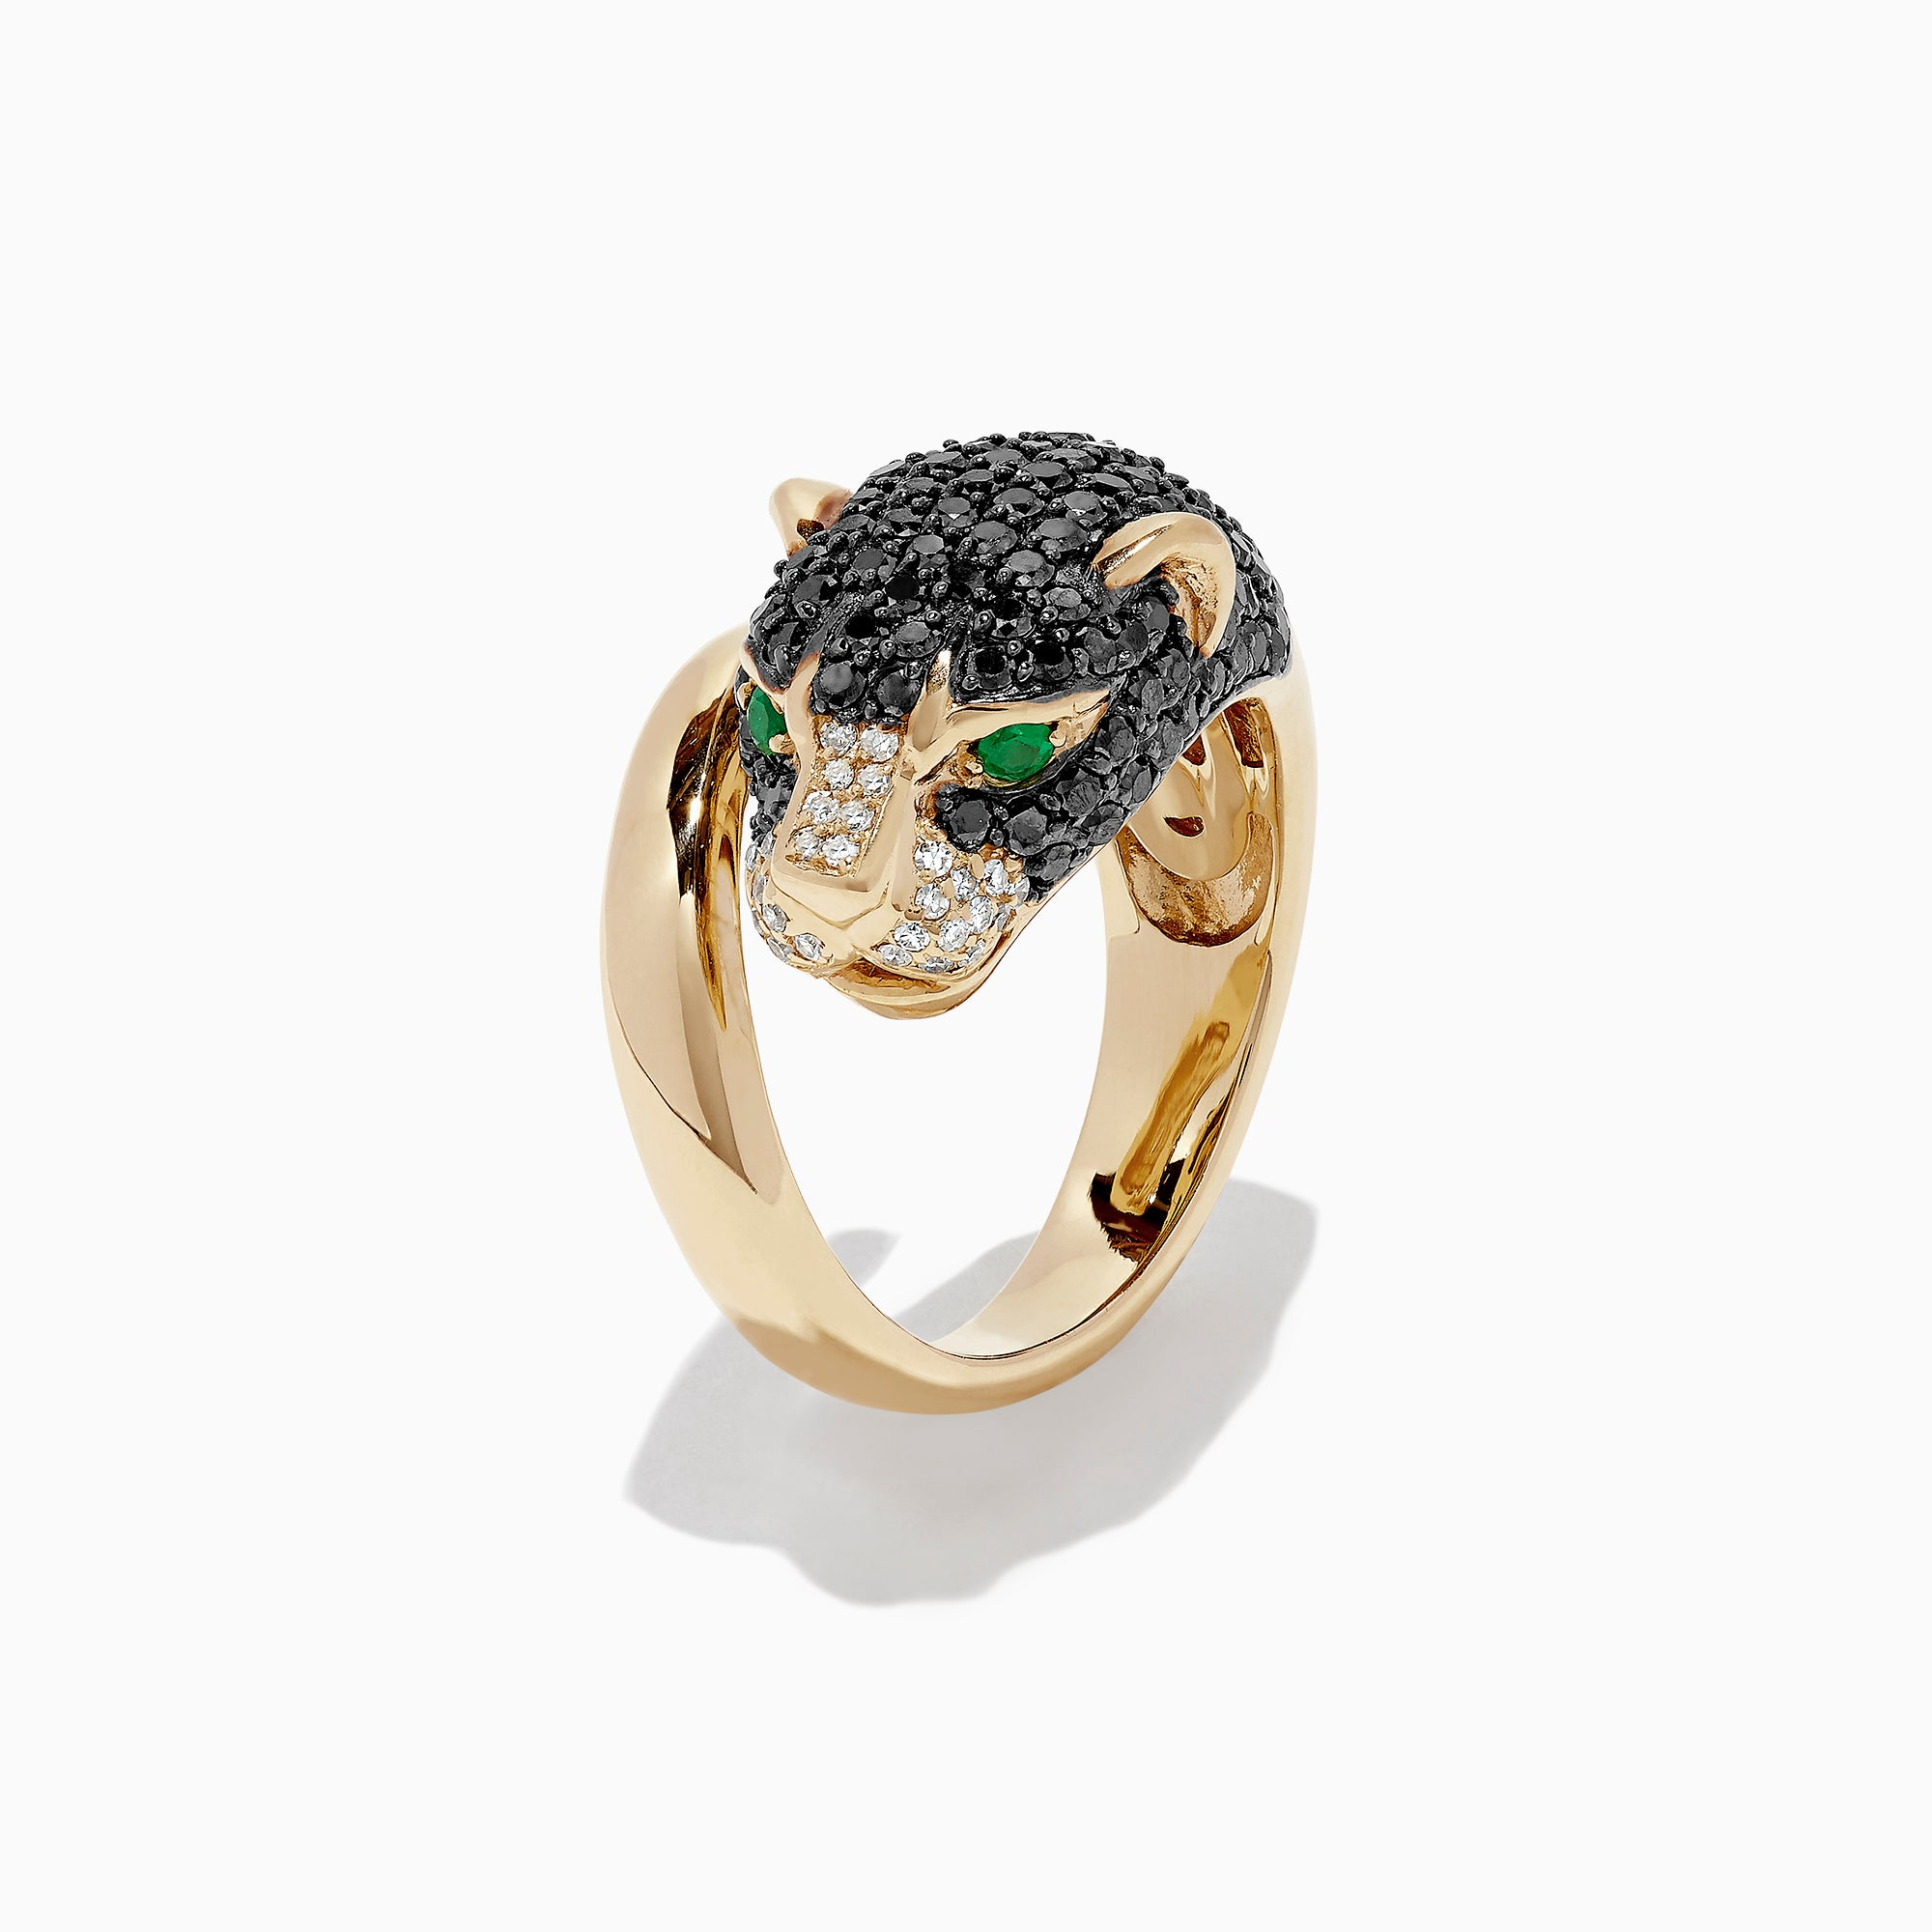 Effy Signature 14K Yellow Gold Diamond and Emerald Panther Ring, 1.8 TCW